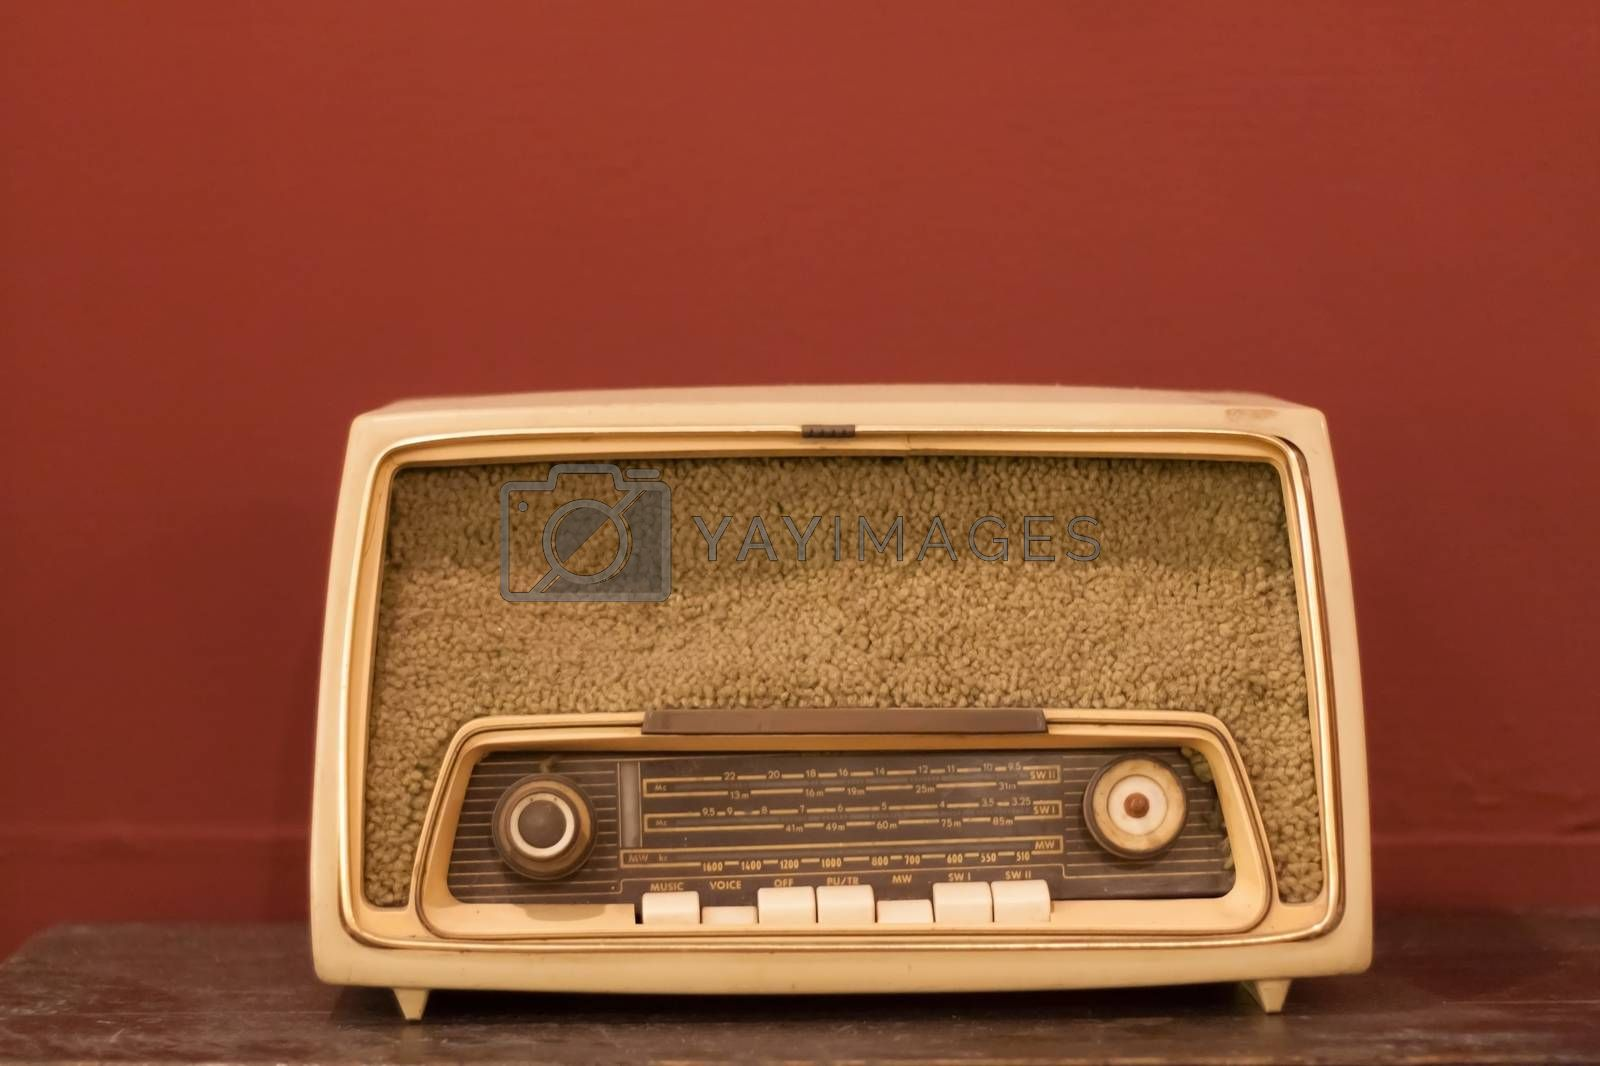 Old radio, old radio. There is a system to adjust the wave itself is shown on the table.